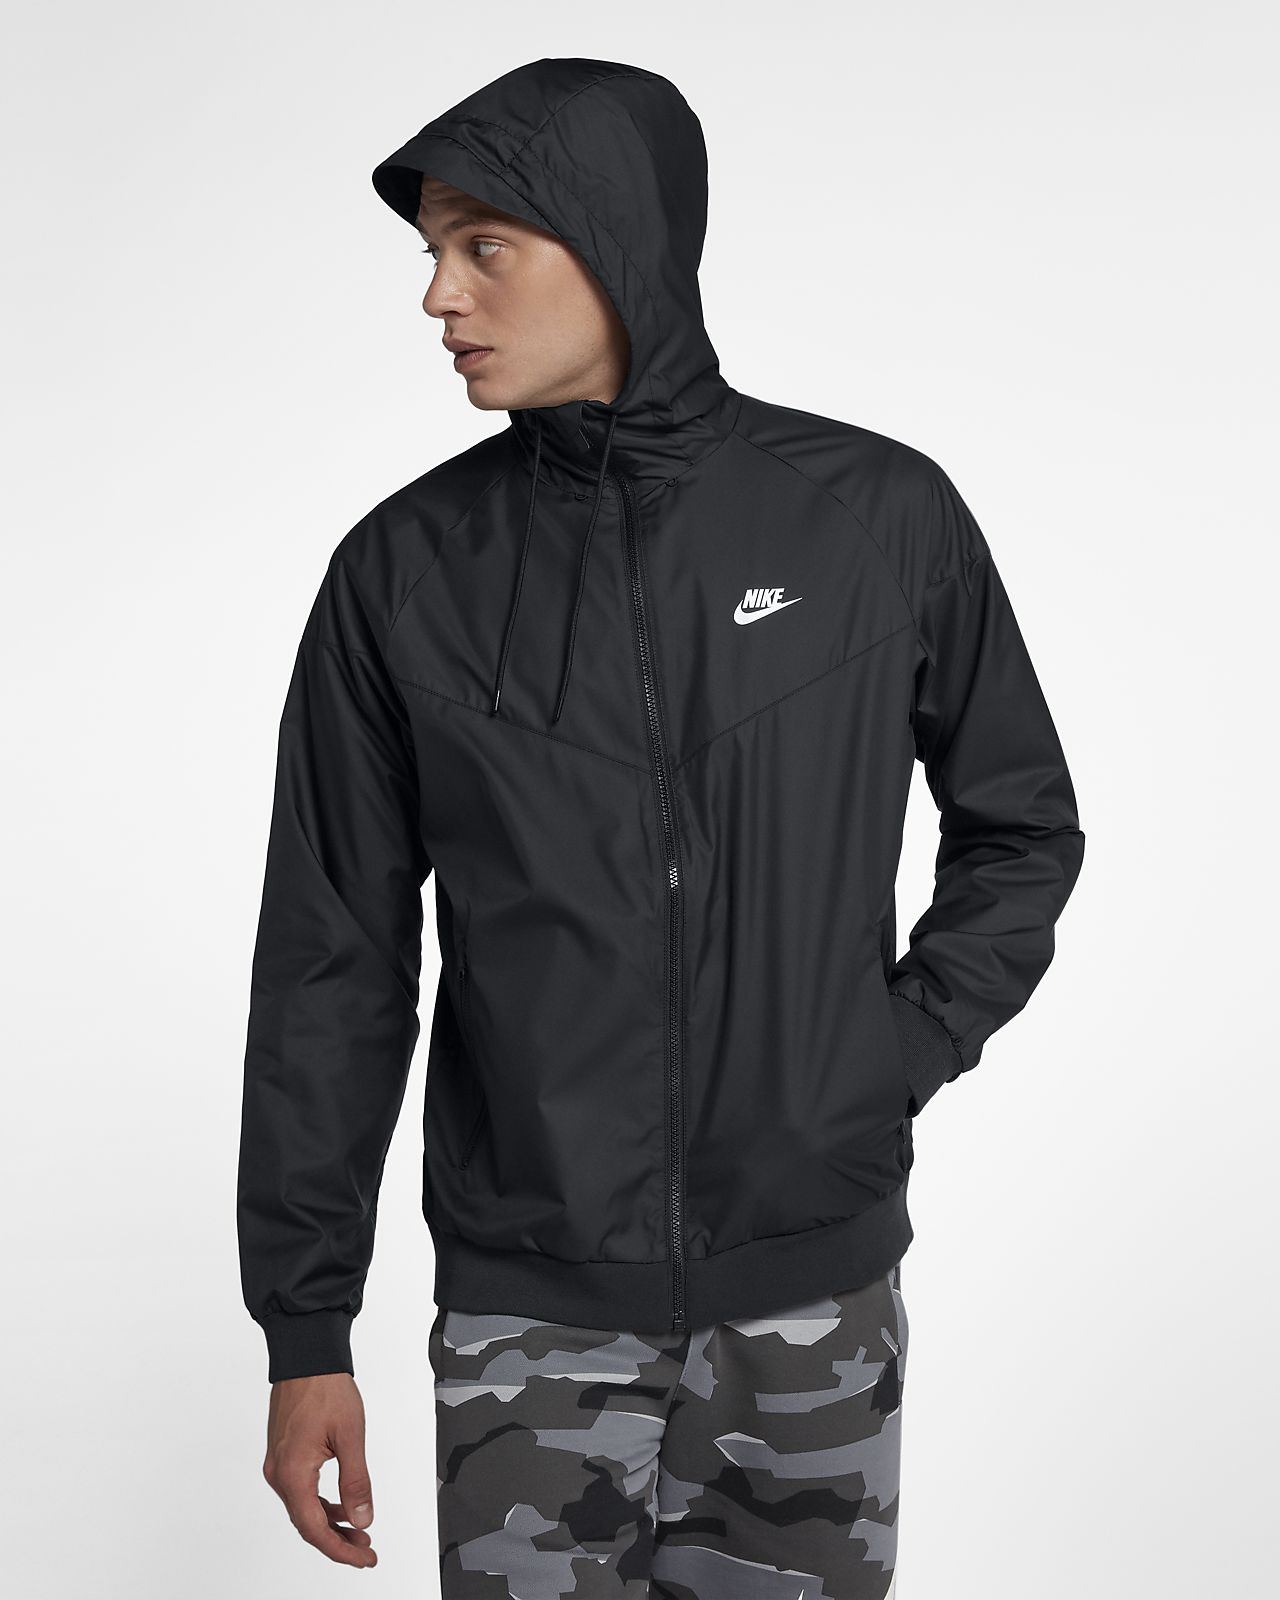 231614be0d1c Nike Sportswear Windrunner Men s Jacket. Nike.com GB